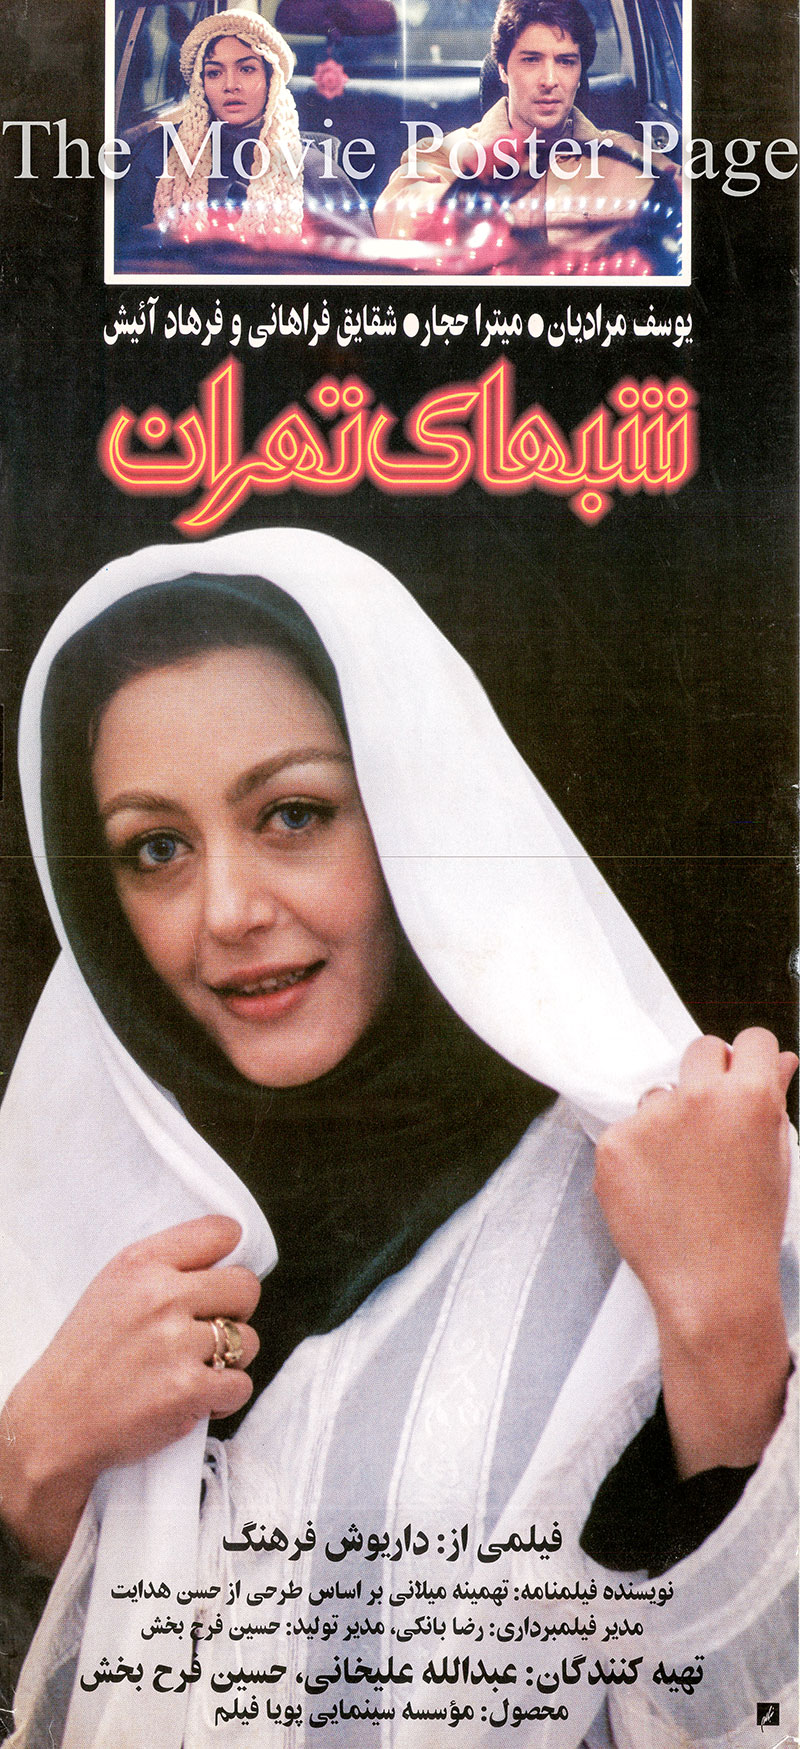 Pictured is an Iranian promotional poster for the 2001 Dariush Farhang film Nights of Tehran starring Mitra Hajjar.